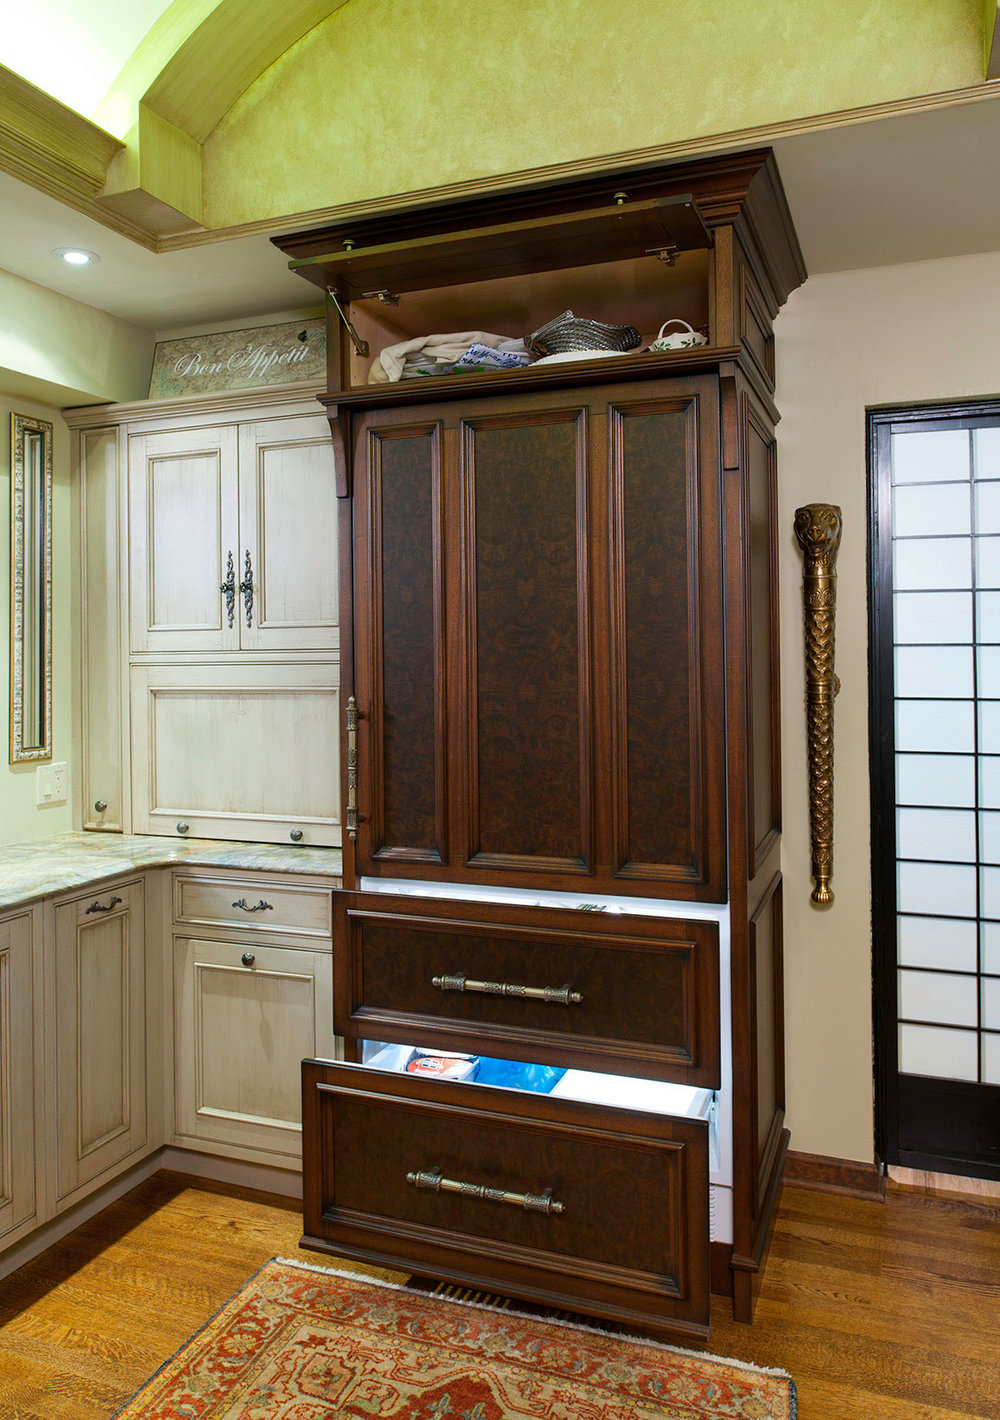 kitchen_bath_Concepts_pittsburgh_traditional_home5_9.jpg